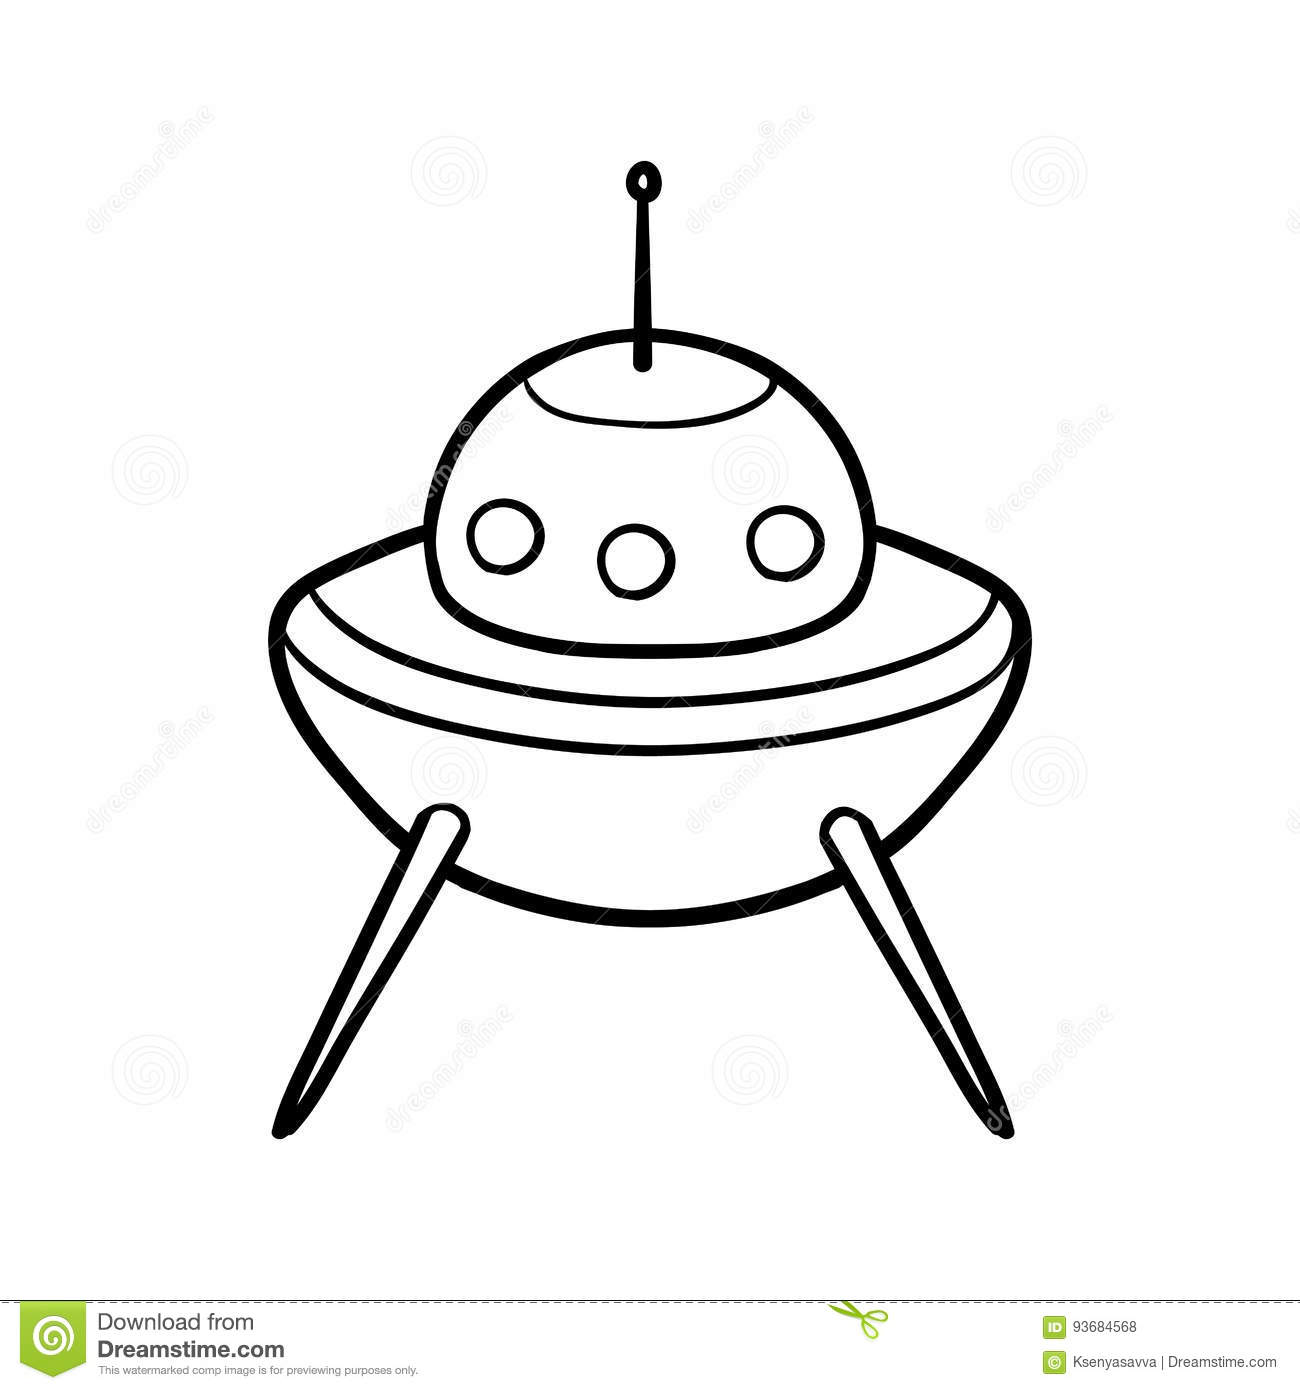 Coloring book, UFO stock vector. Illustration of adorable - 93684568